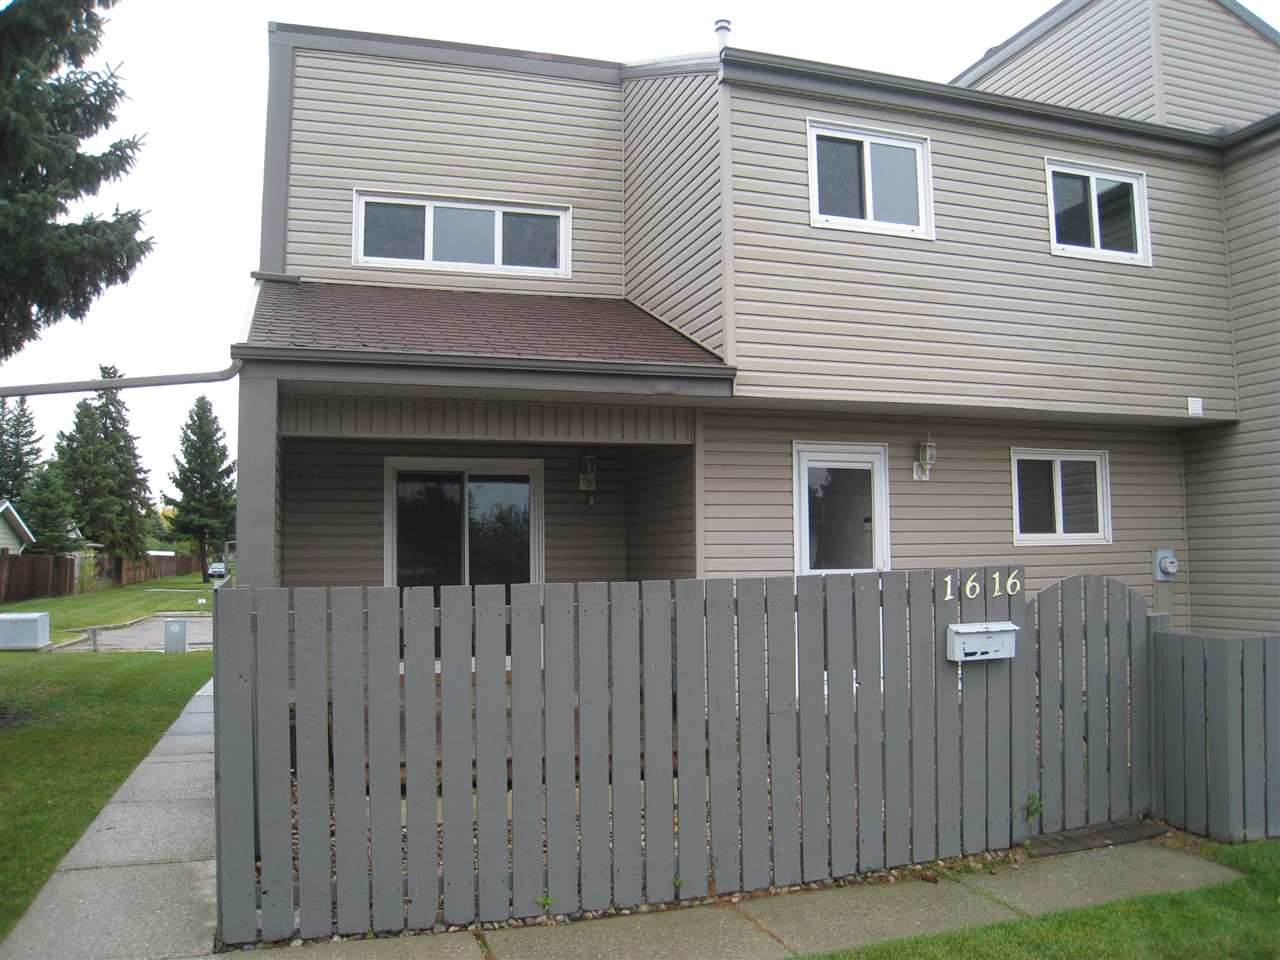 Terrific unit in well managed complex. Sides and fronts onto green space. Remodelled kitchen, laminate flooring, high efficiency furnace. Needs updating. Priced to sell! View Realtor's website for more details.